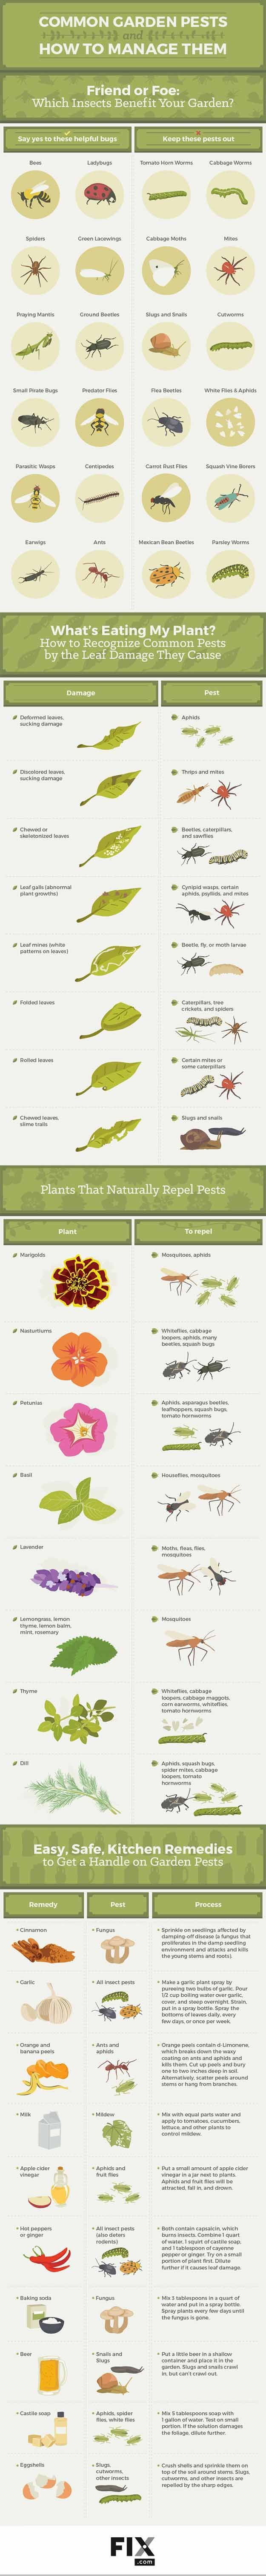 common garden pests and how to manage them infographic natural